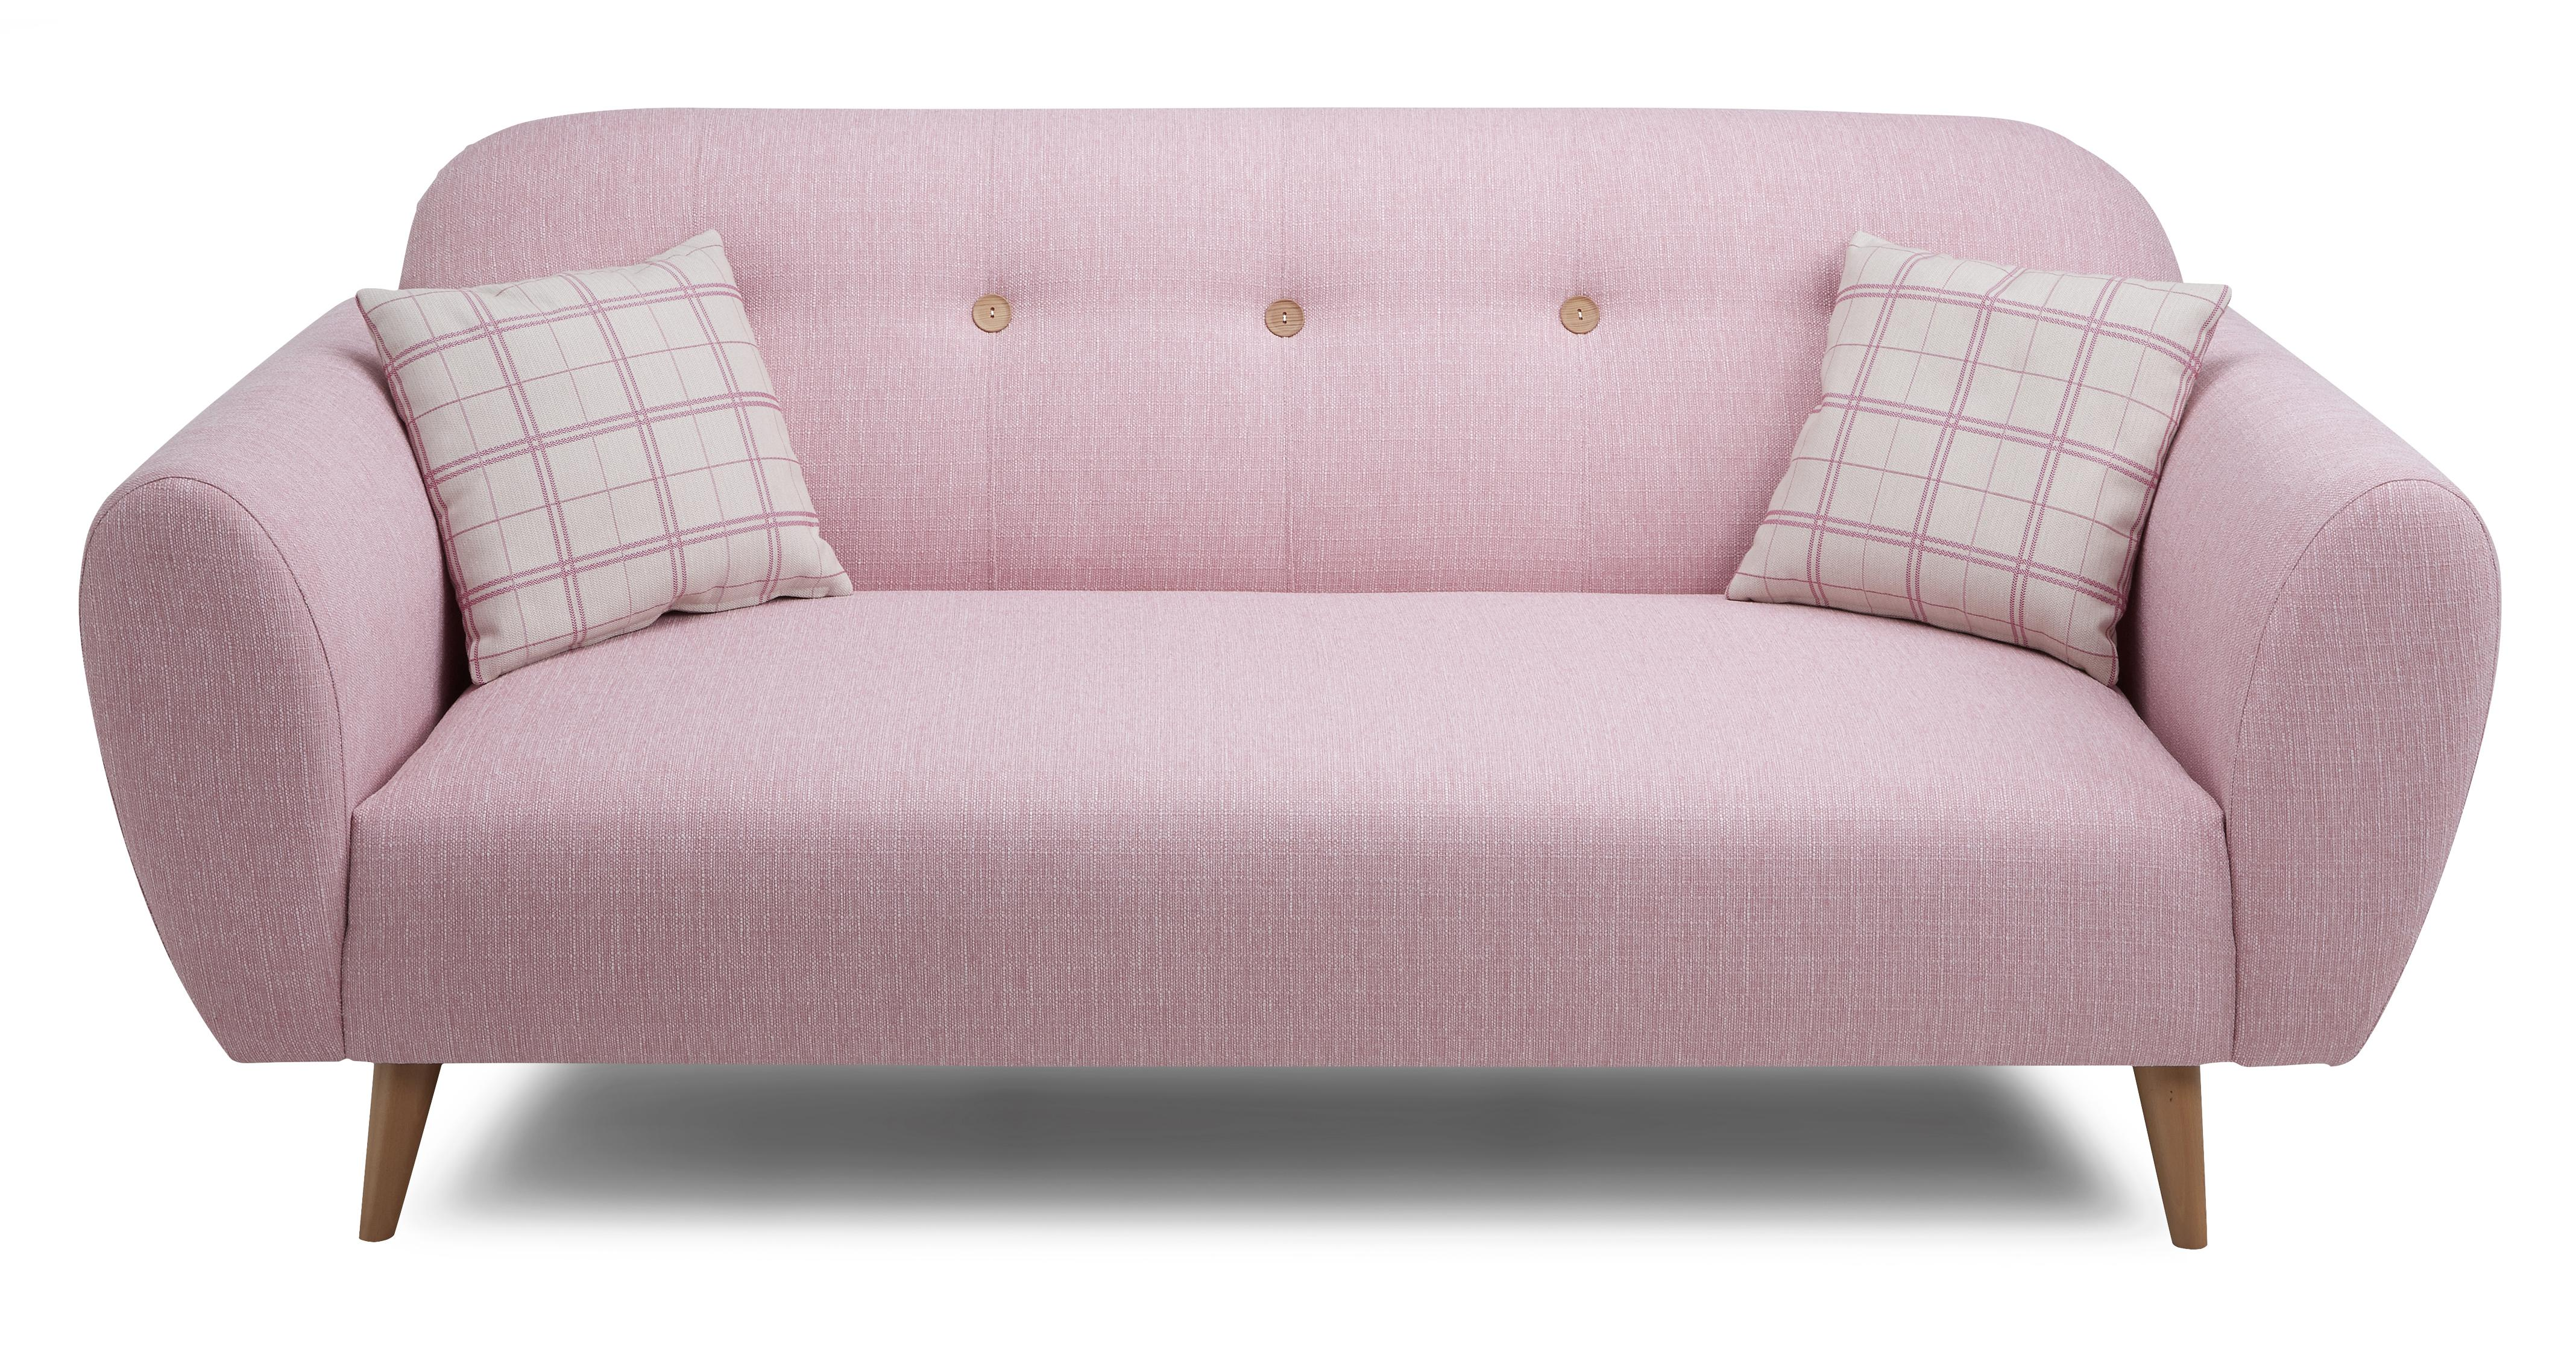 3 Seater Sofa Betsy on Vintage Bedroom Interior Design